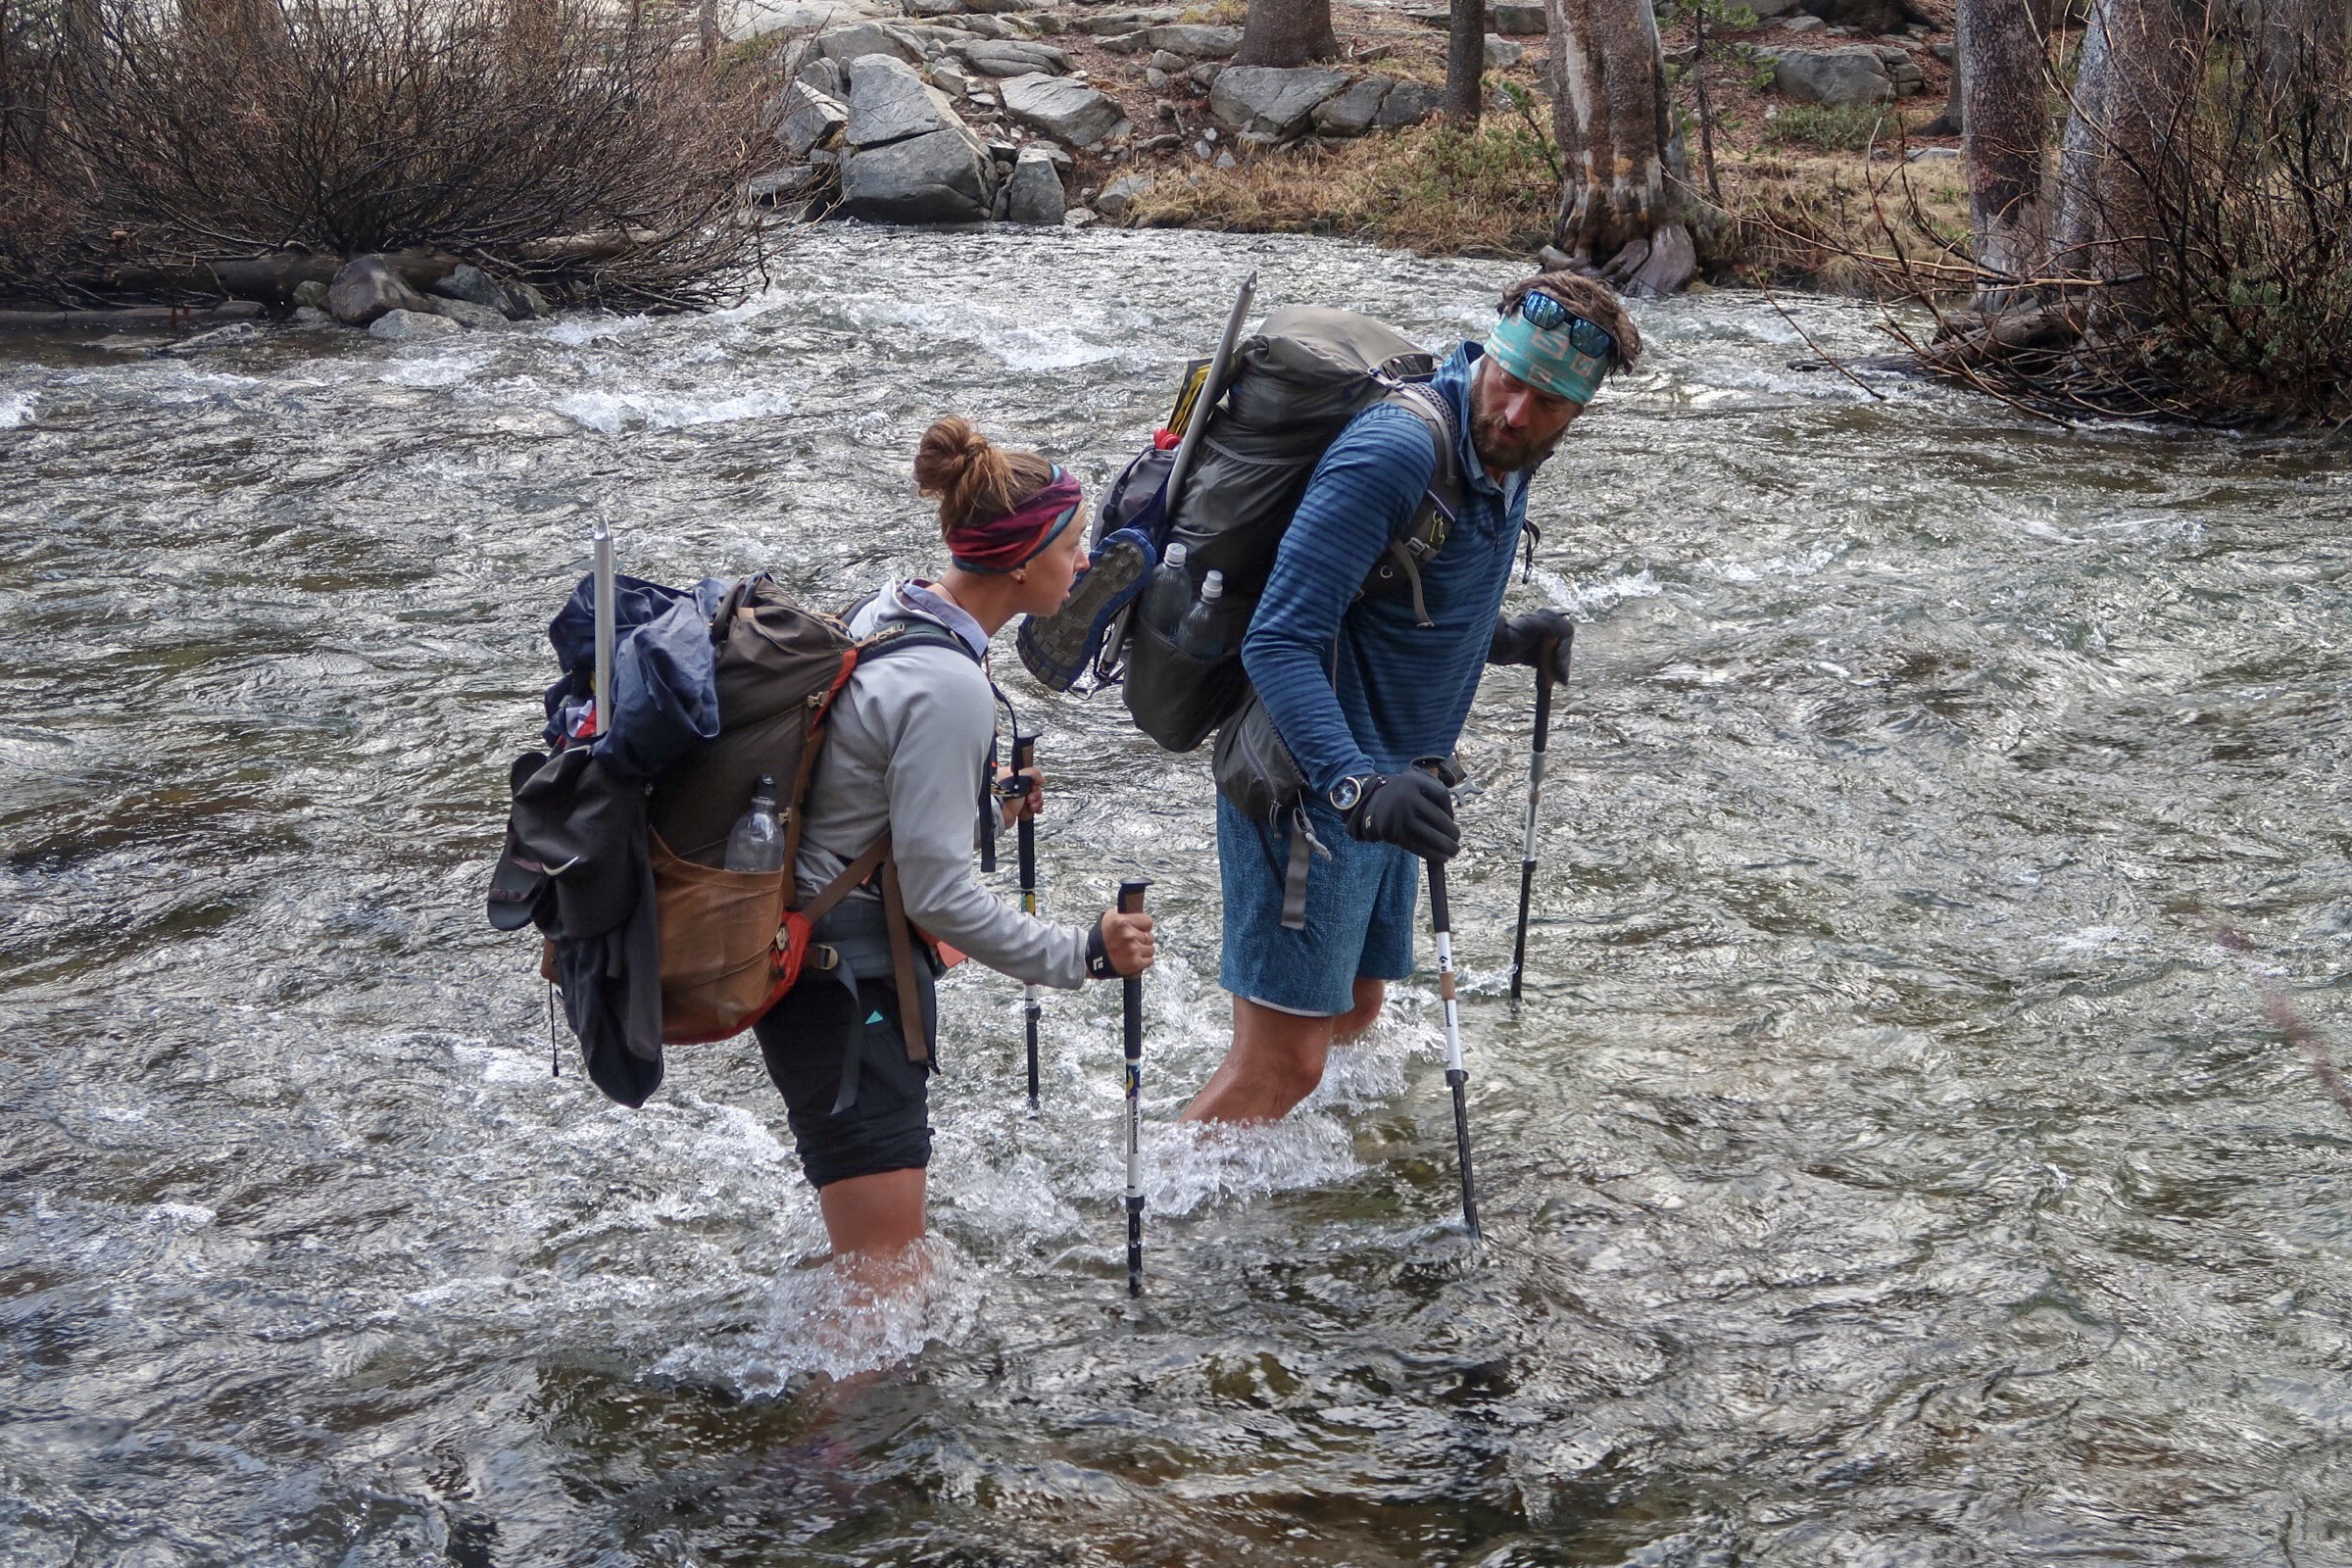 The first hard river crossing